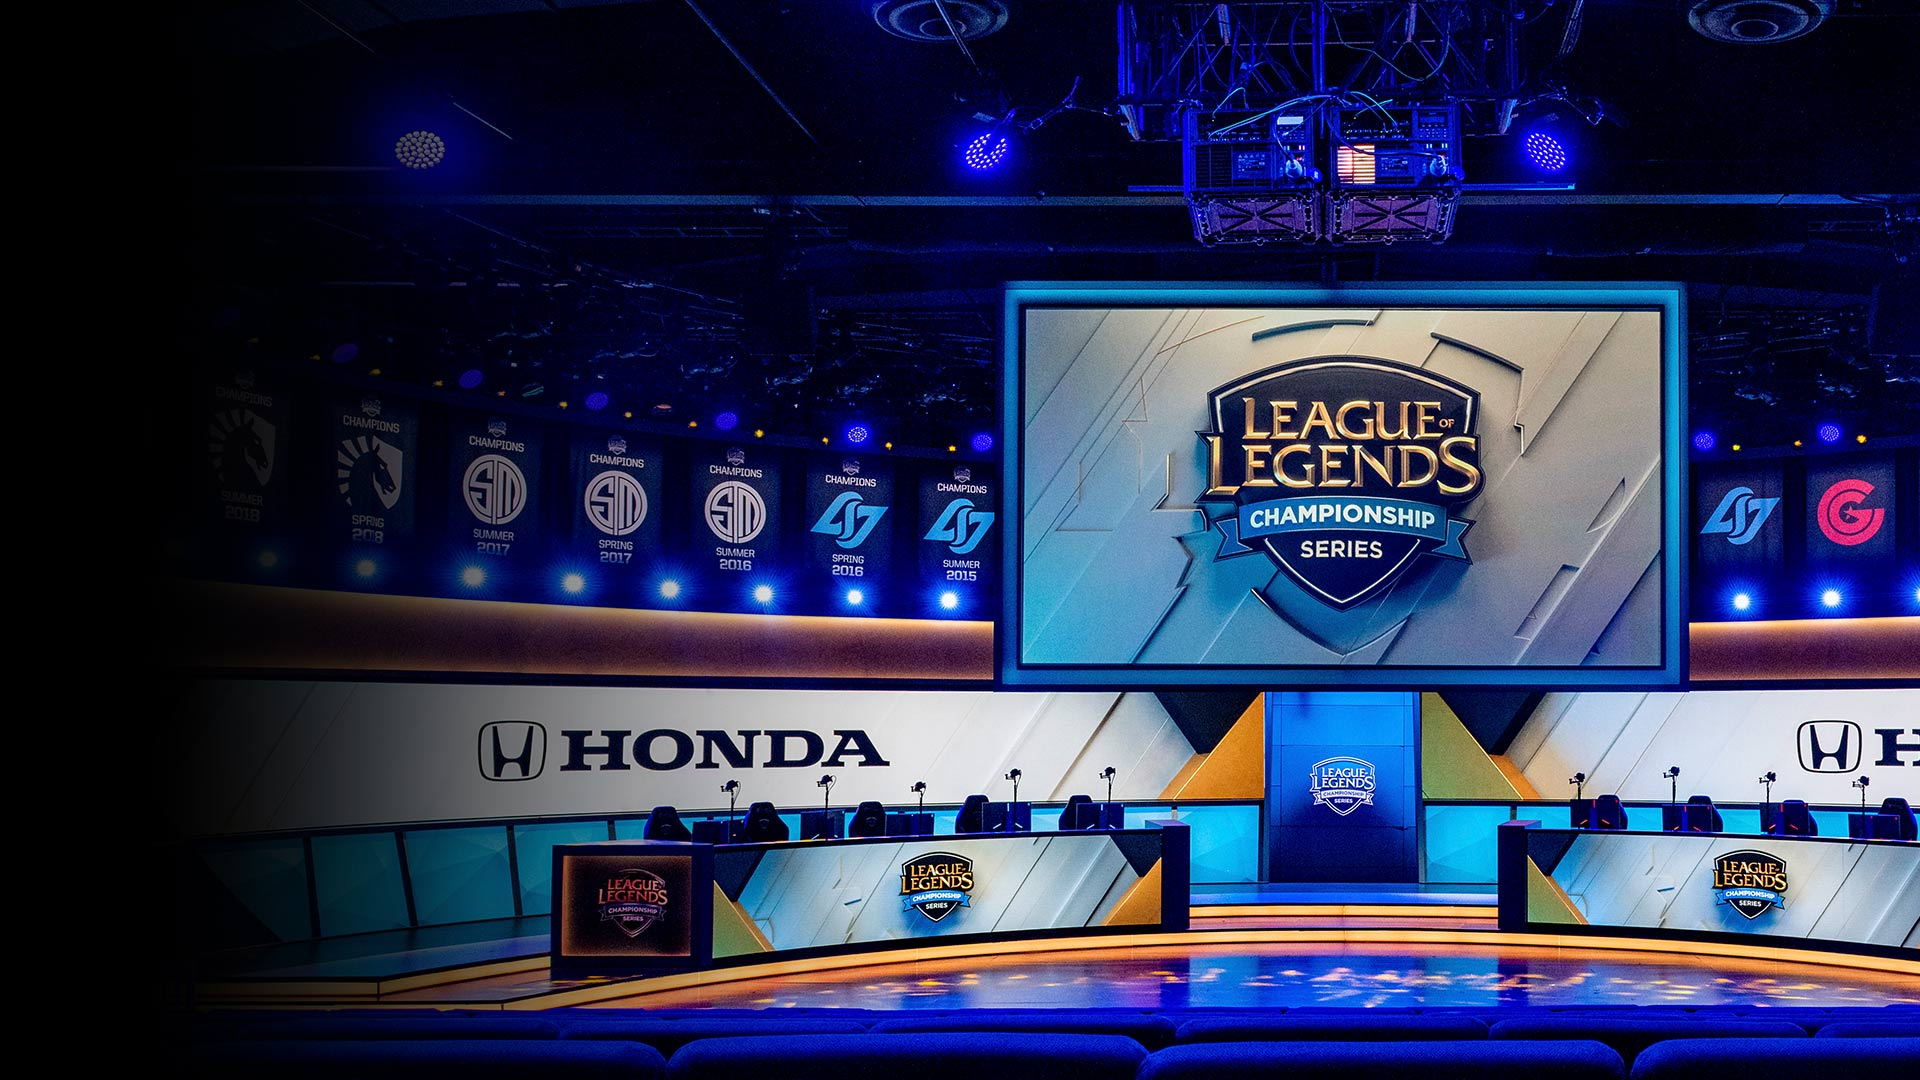 Home of the LCS (League of Legends Championship Series – North